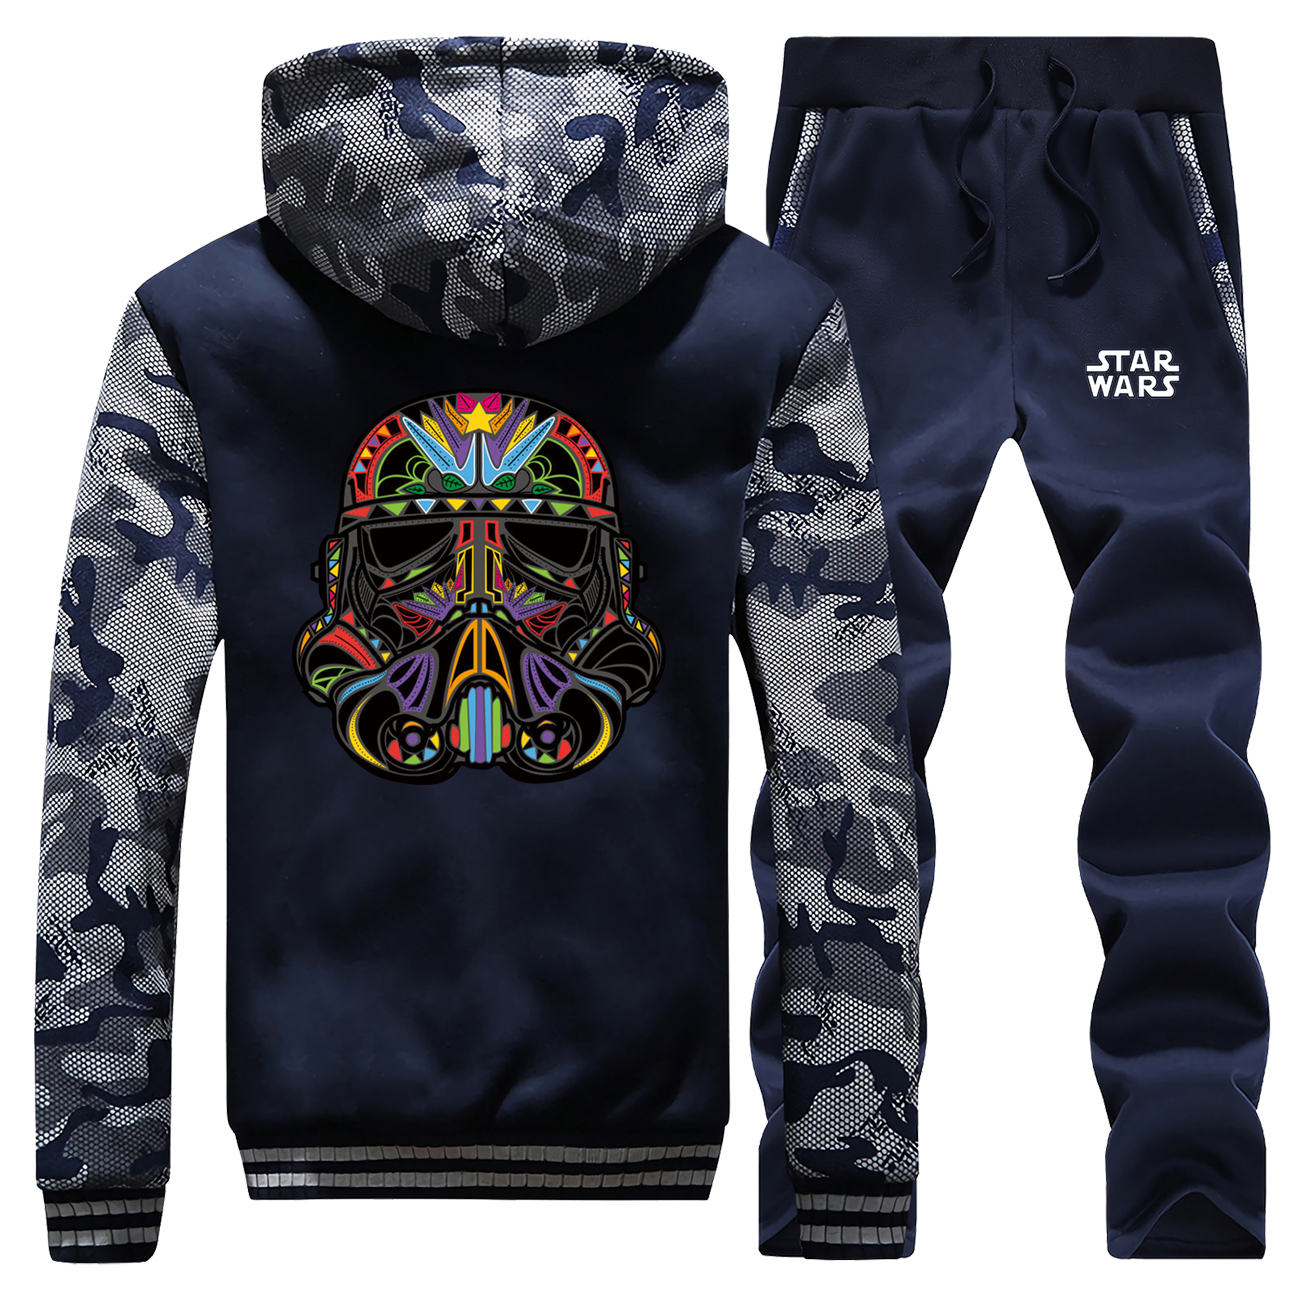 Star Wars Funny Stormtrooper Winter Hoodies Mens Streetwear Raglan Camouflage Suit Coat Thick Zippper Hooded+Pants 2 Piece Set